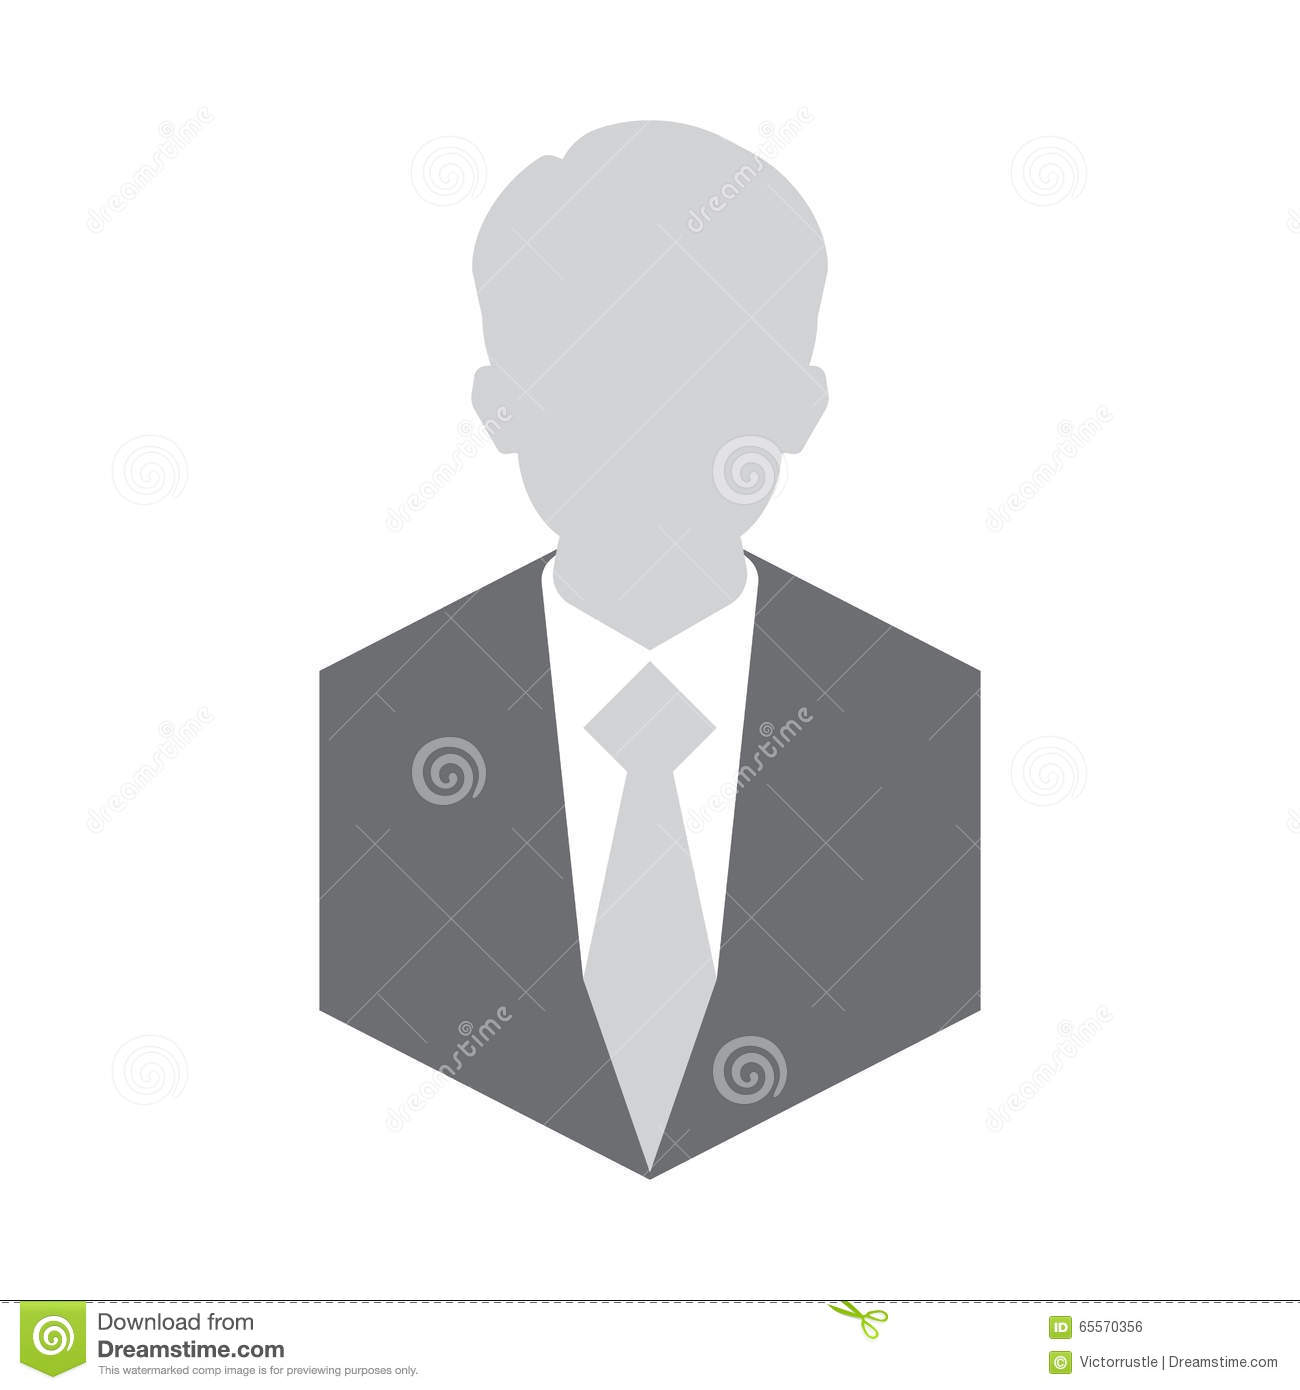 businessman silhouette avatar profile picture man flet. Black Bedroom Furniture Sets. Home Design Ideas